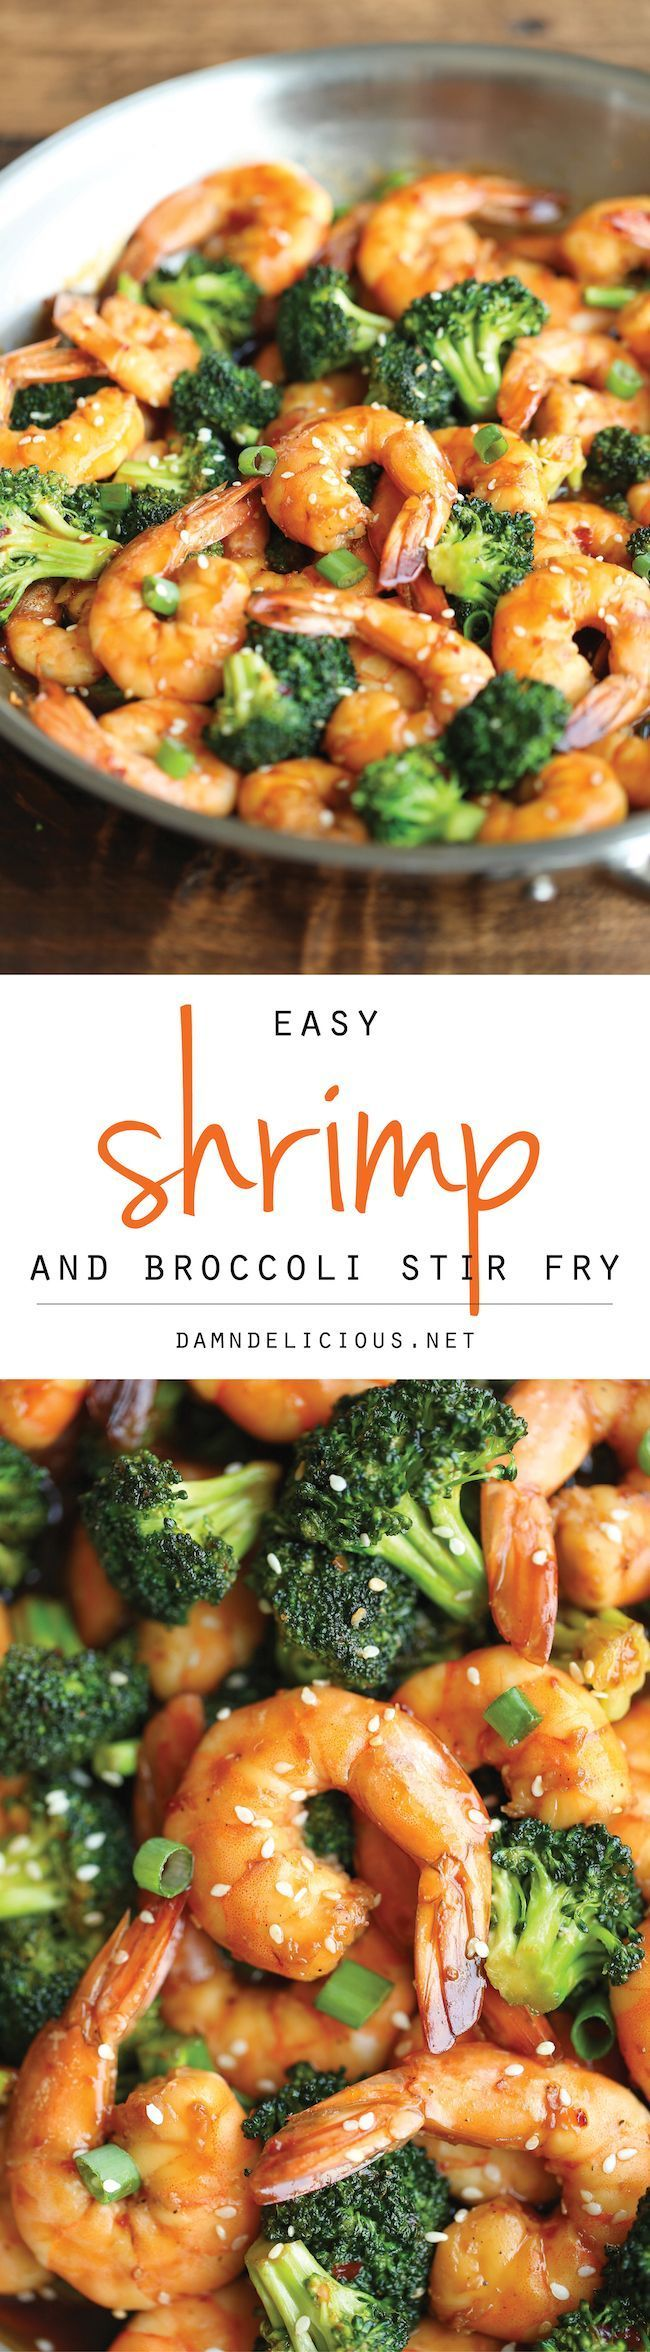 Easy Shrimp and Broccoli Stir Fry - Damn Delicious